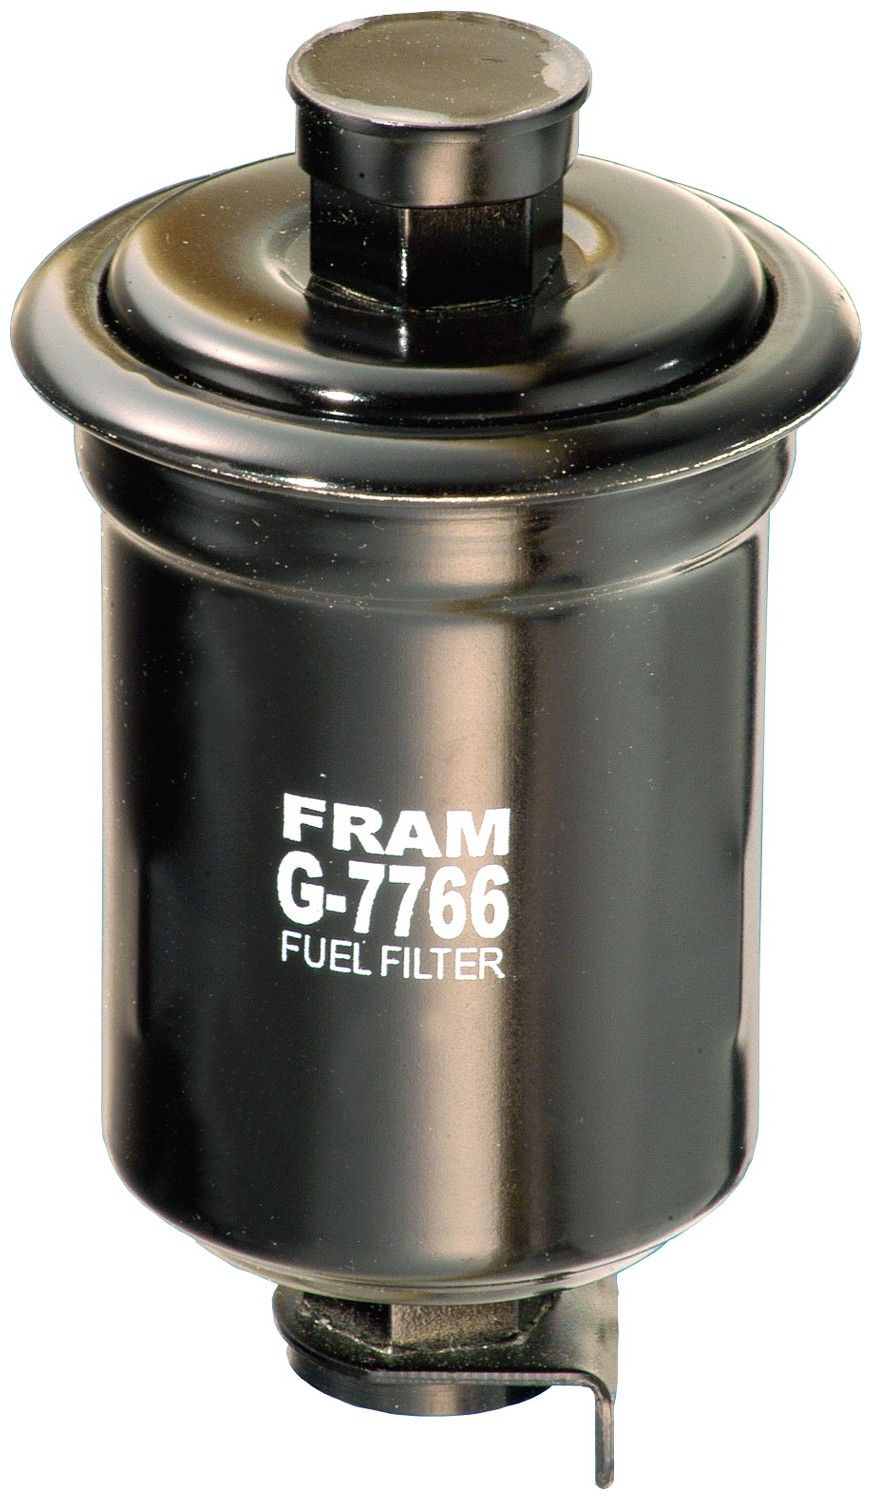 Toyota Camry Fuel Filter Replacement Beck Arnley Fram Hastings 1997 Location 1992 4 Cyl 22l G7766 In Line Recommended Based On Current Original Equipment Requirements Unit Box Product